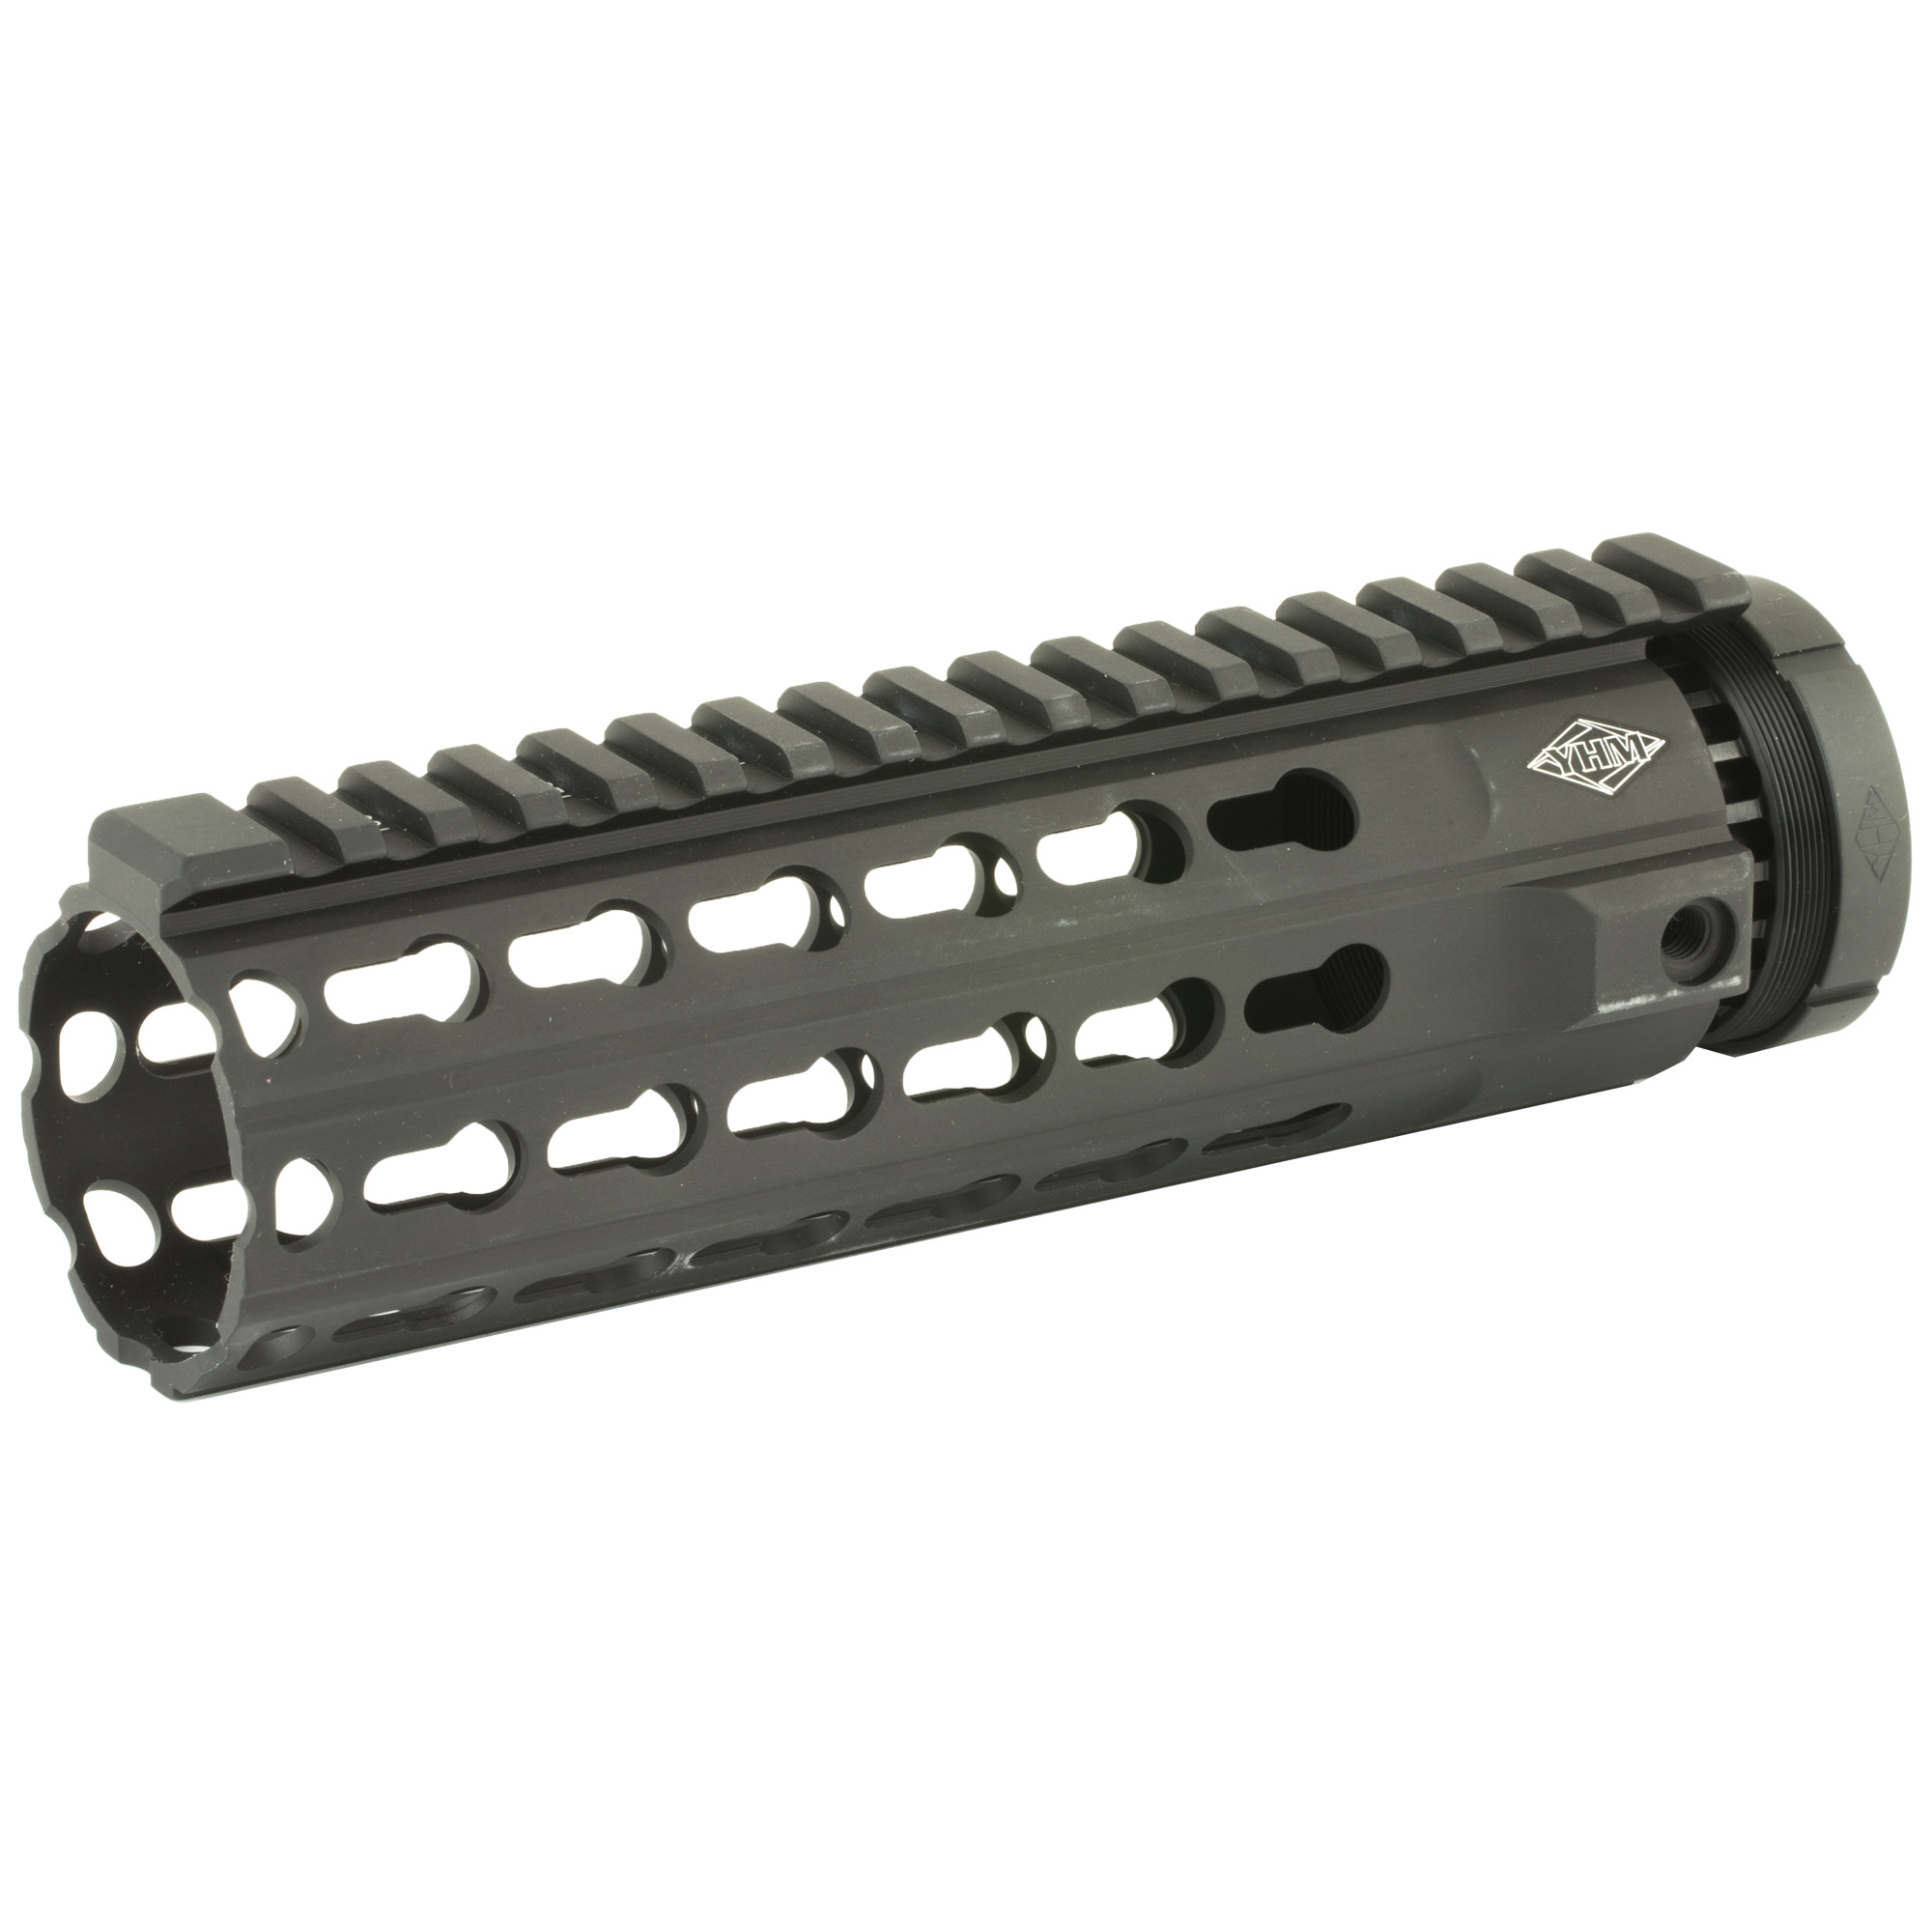 """YHM is proud to introduce The KR7 series of handguards. The KeyMod handguard has taken the AR industry by storm because of its simplistic accessory mounting"""" and light weight. The KR7 is one of their lightest handguards to date"""" but you can still add accessories along the entire handguard length"""" even at every 45 degree position. Note: This handguard features a """"T"""" marked extended top rail."""